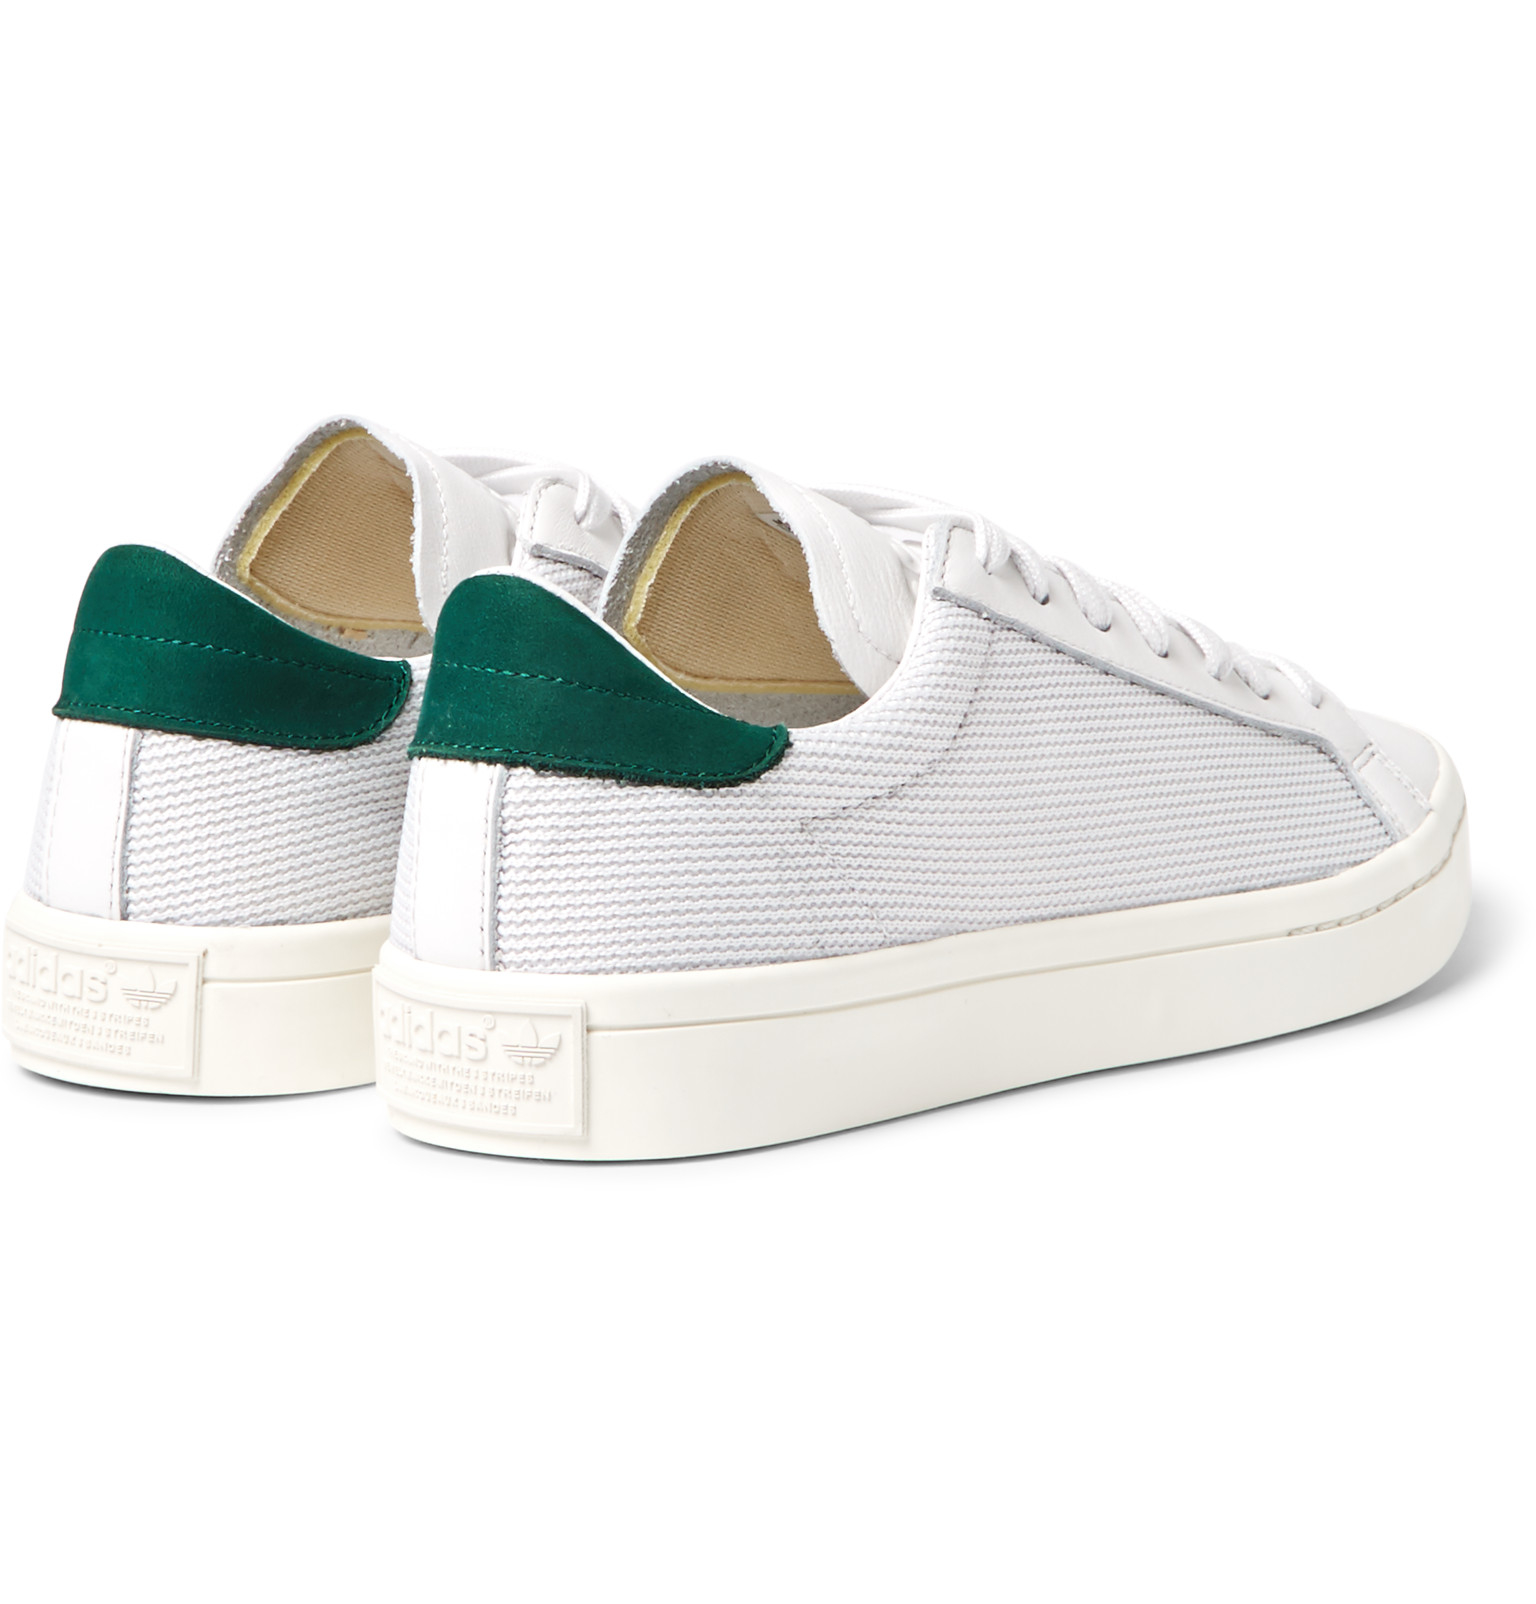 Court Vantage Low Top Suede Trainers in White